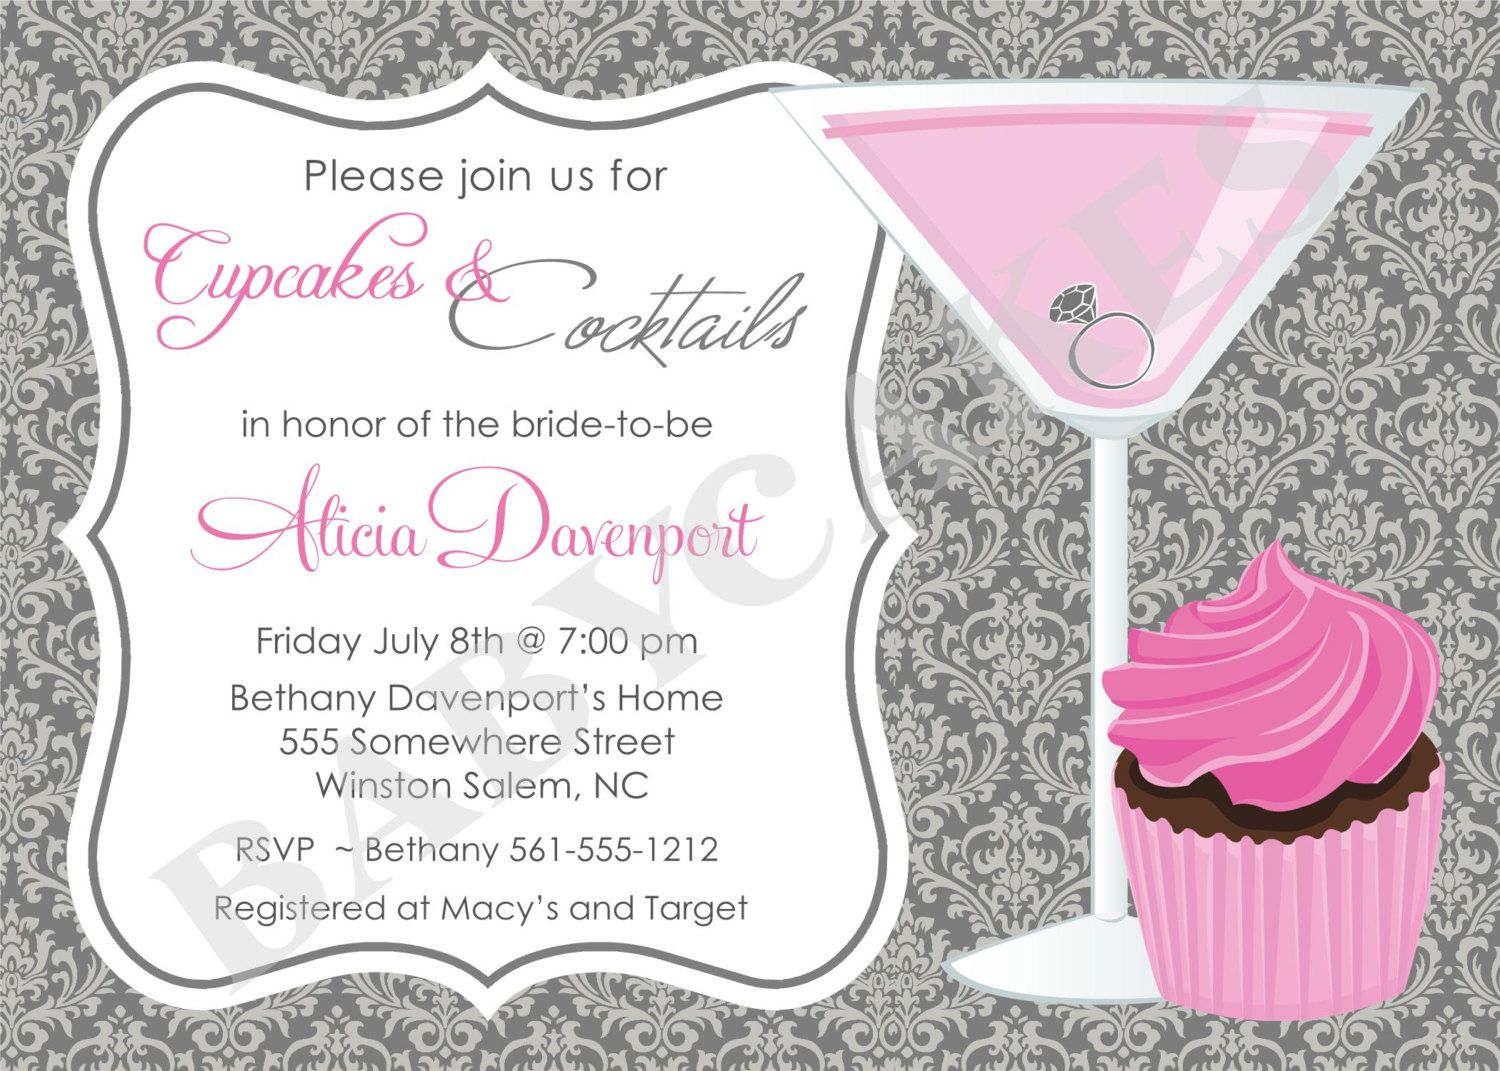 cupcakes and cocktails bridal shower invitation by jcbabycakes